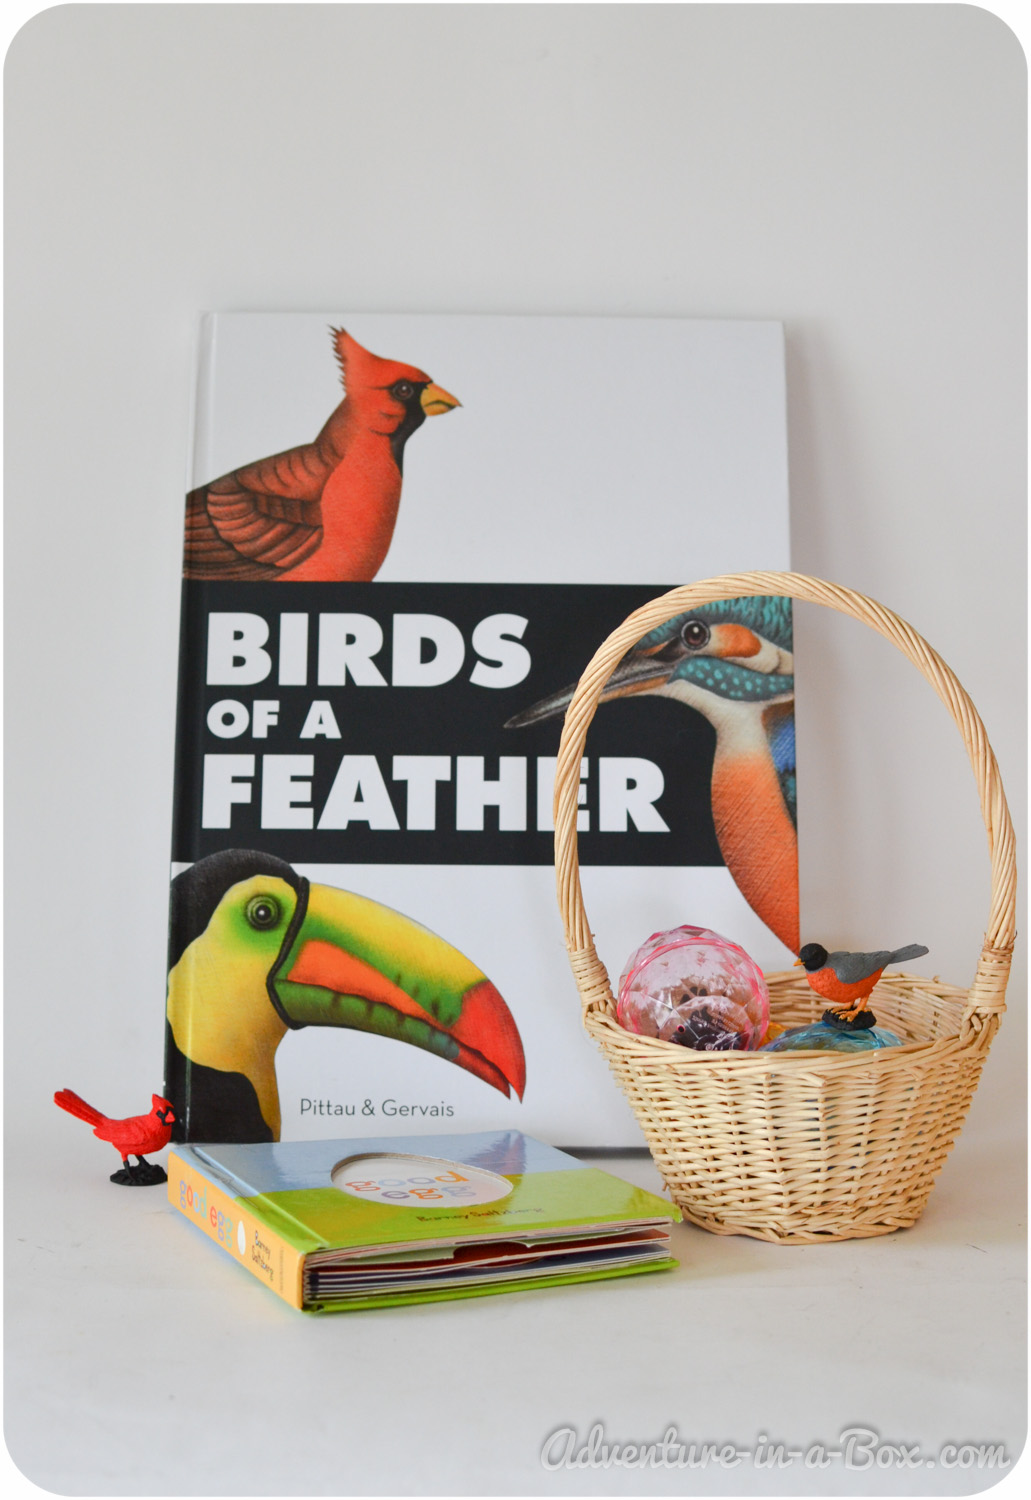 Our Favourite Books: Birds of a Feather